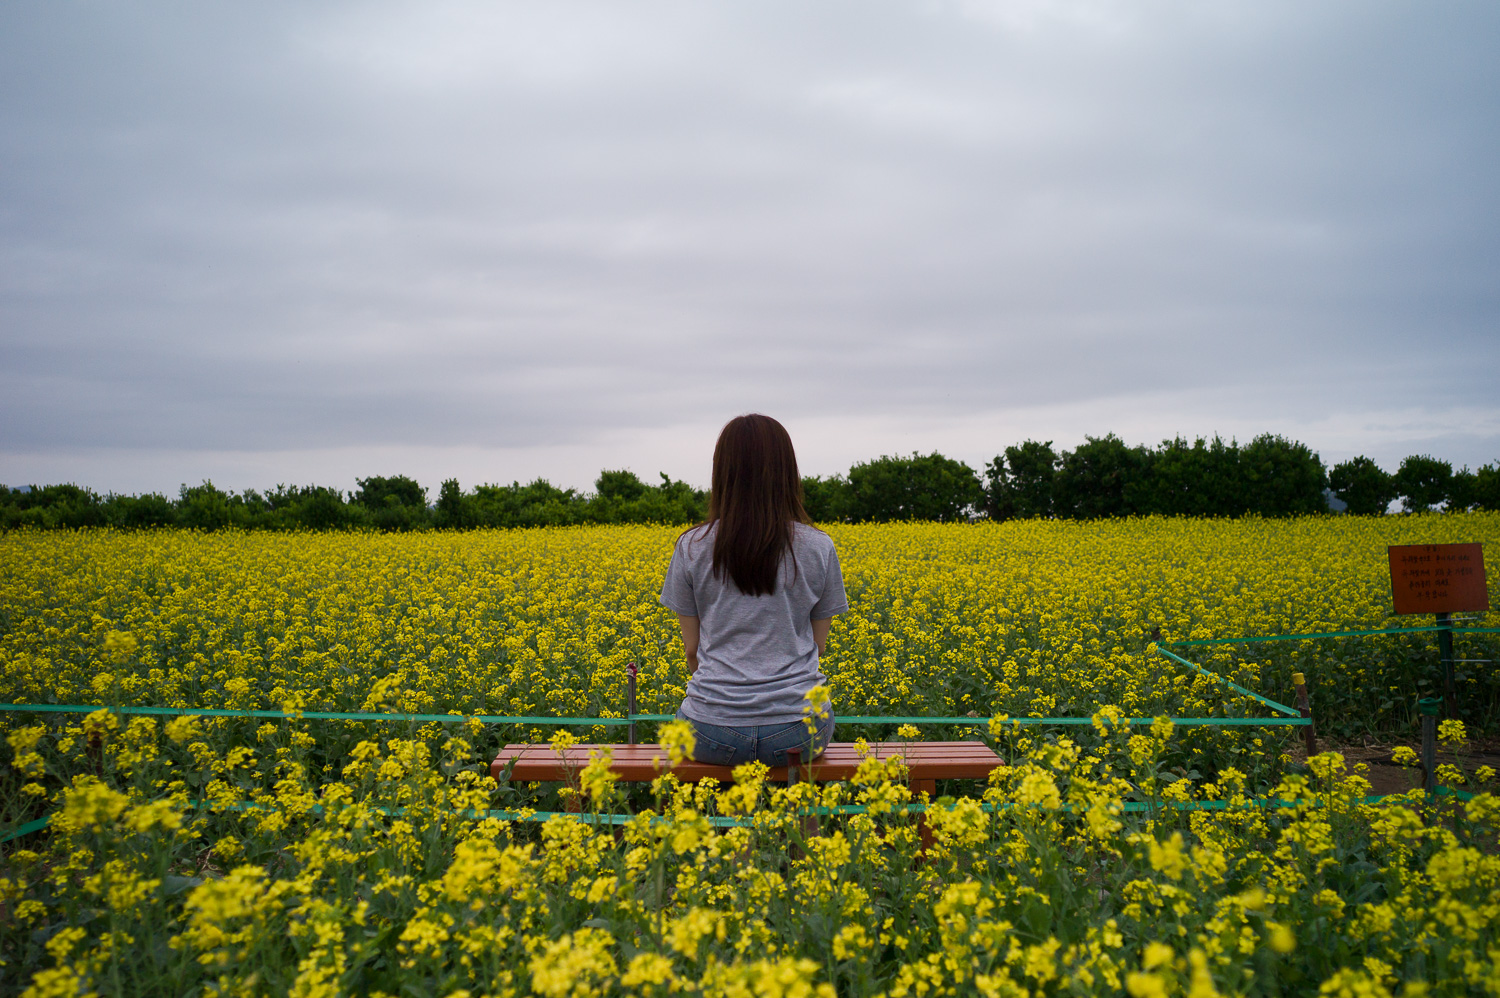 Yellow lady in canola flowers field